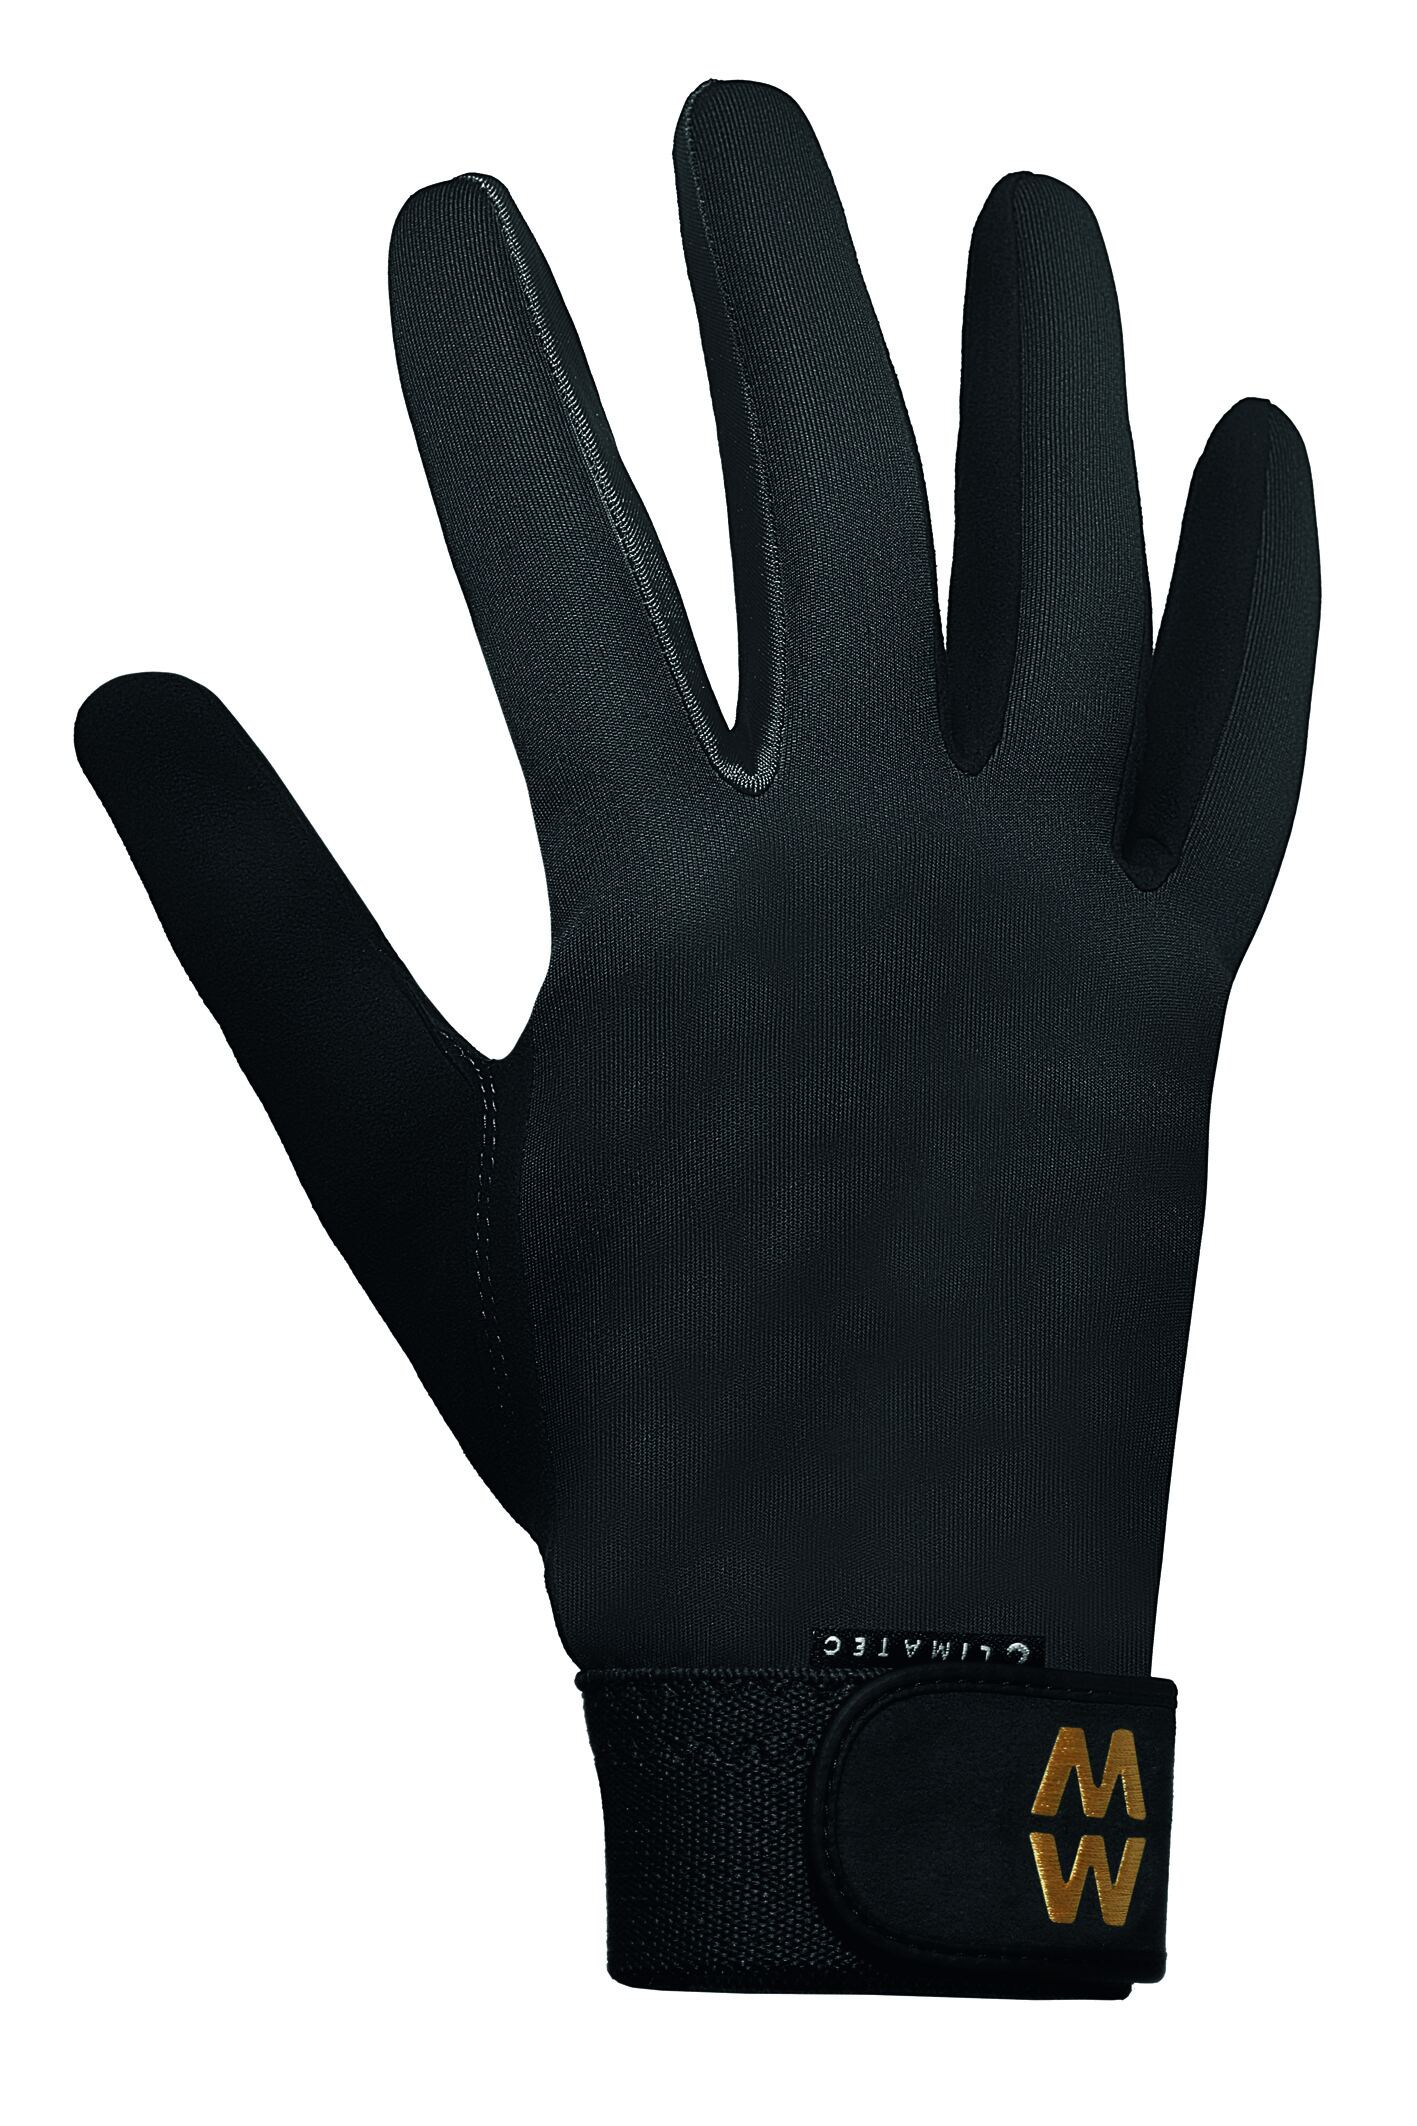 Image of 1 Pair Black MacWet Long Climatec Sports Gloves Unisex 6.5 Unisex - Macwet